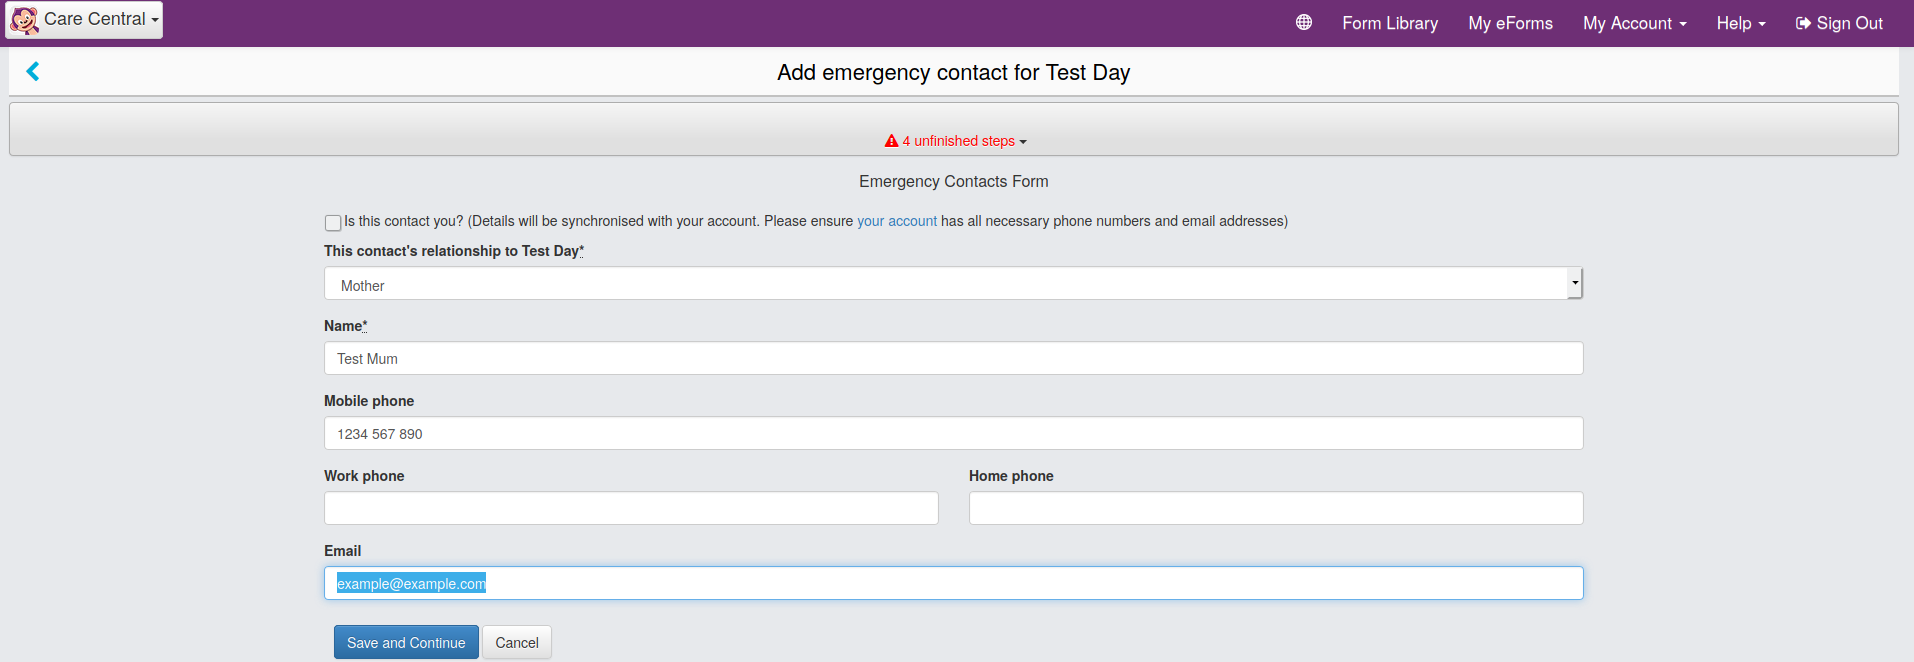 Screenshot of the emergency contact screen in CareMonkey